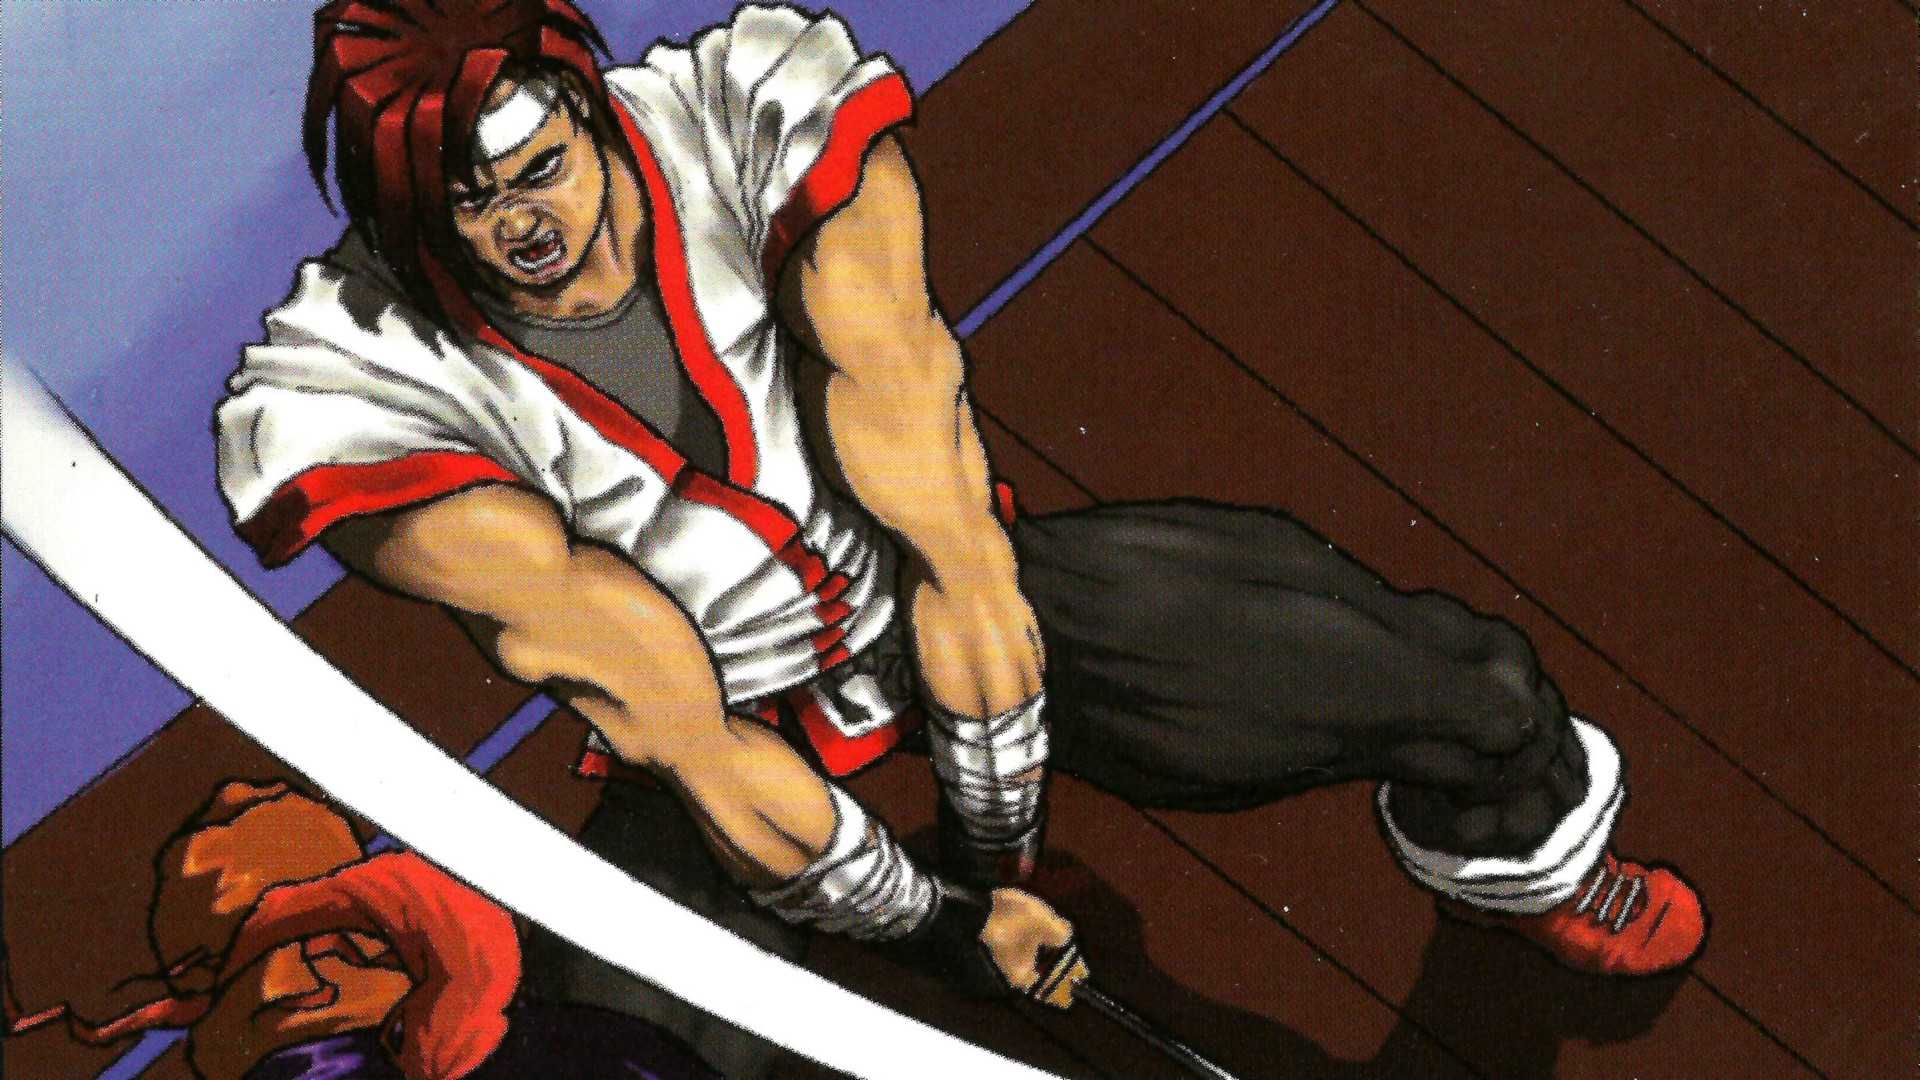 Battle Arena Toshinden Image Id 9878 Image Abyss